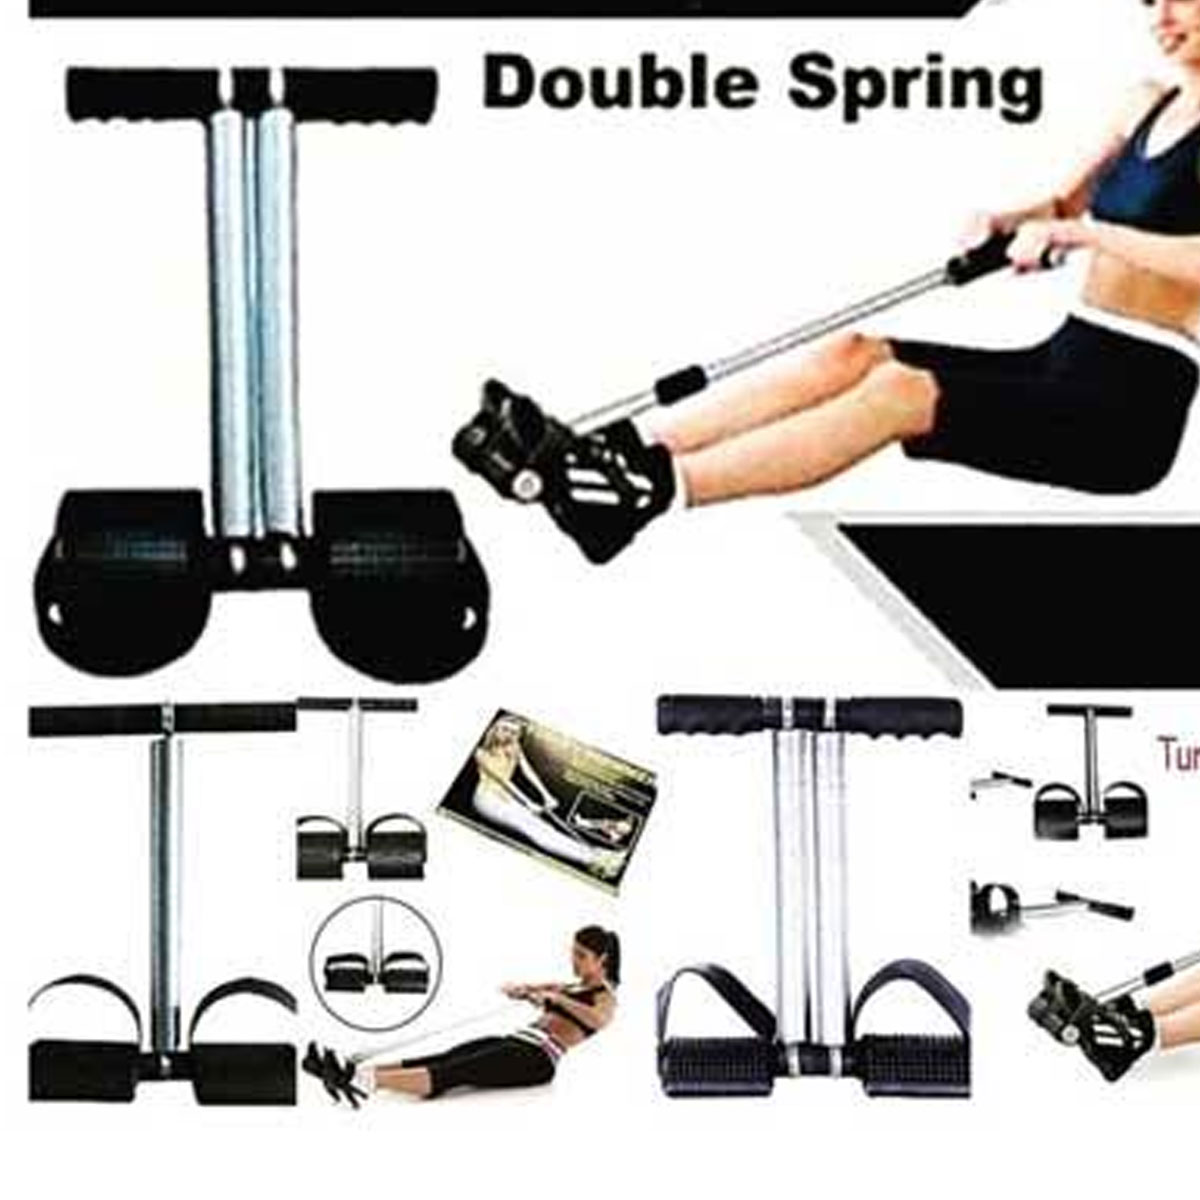 Tummy Trimmer Double Spring Gallery Image 3